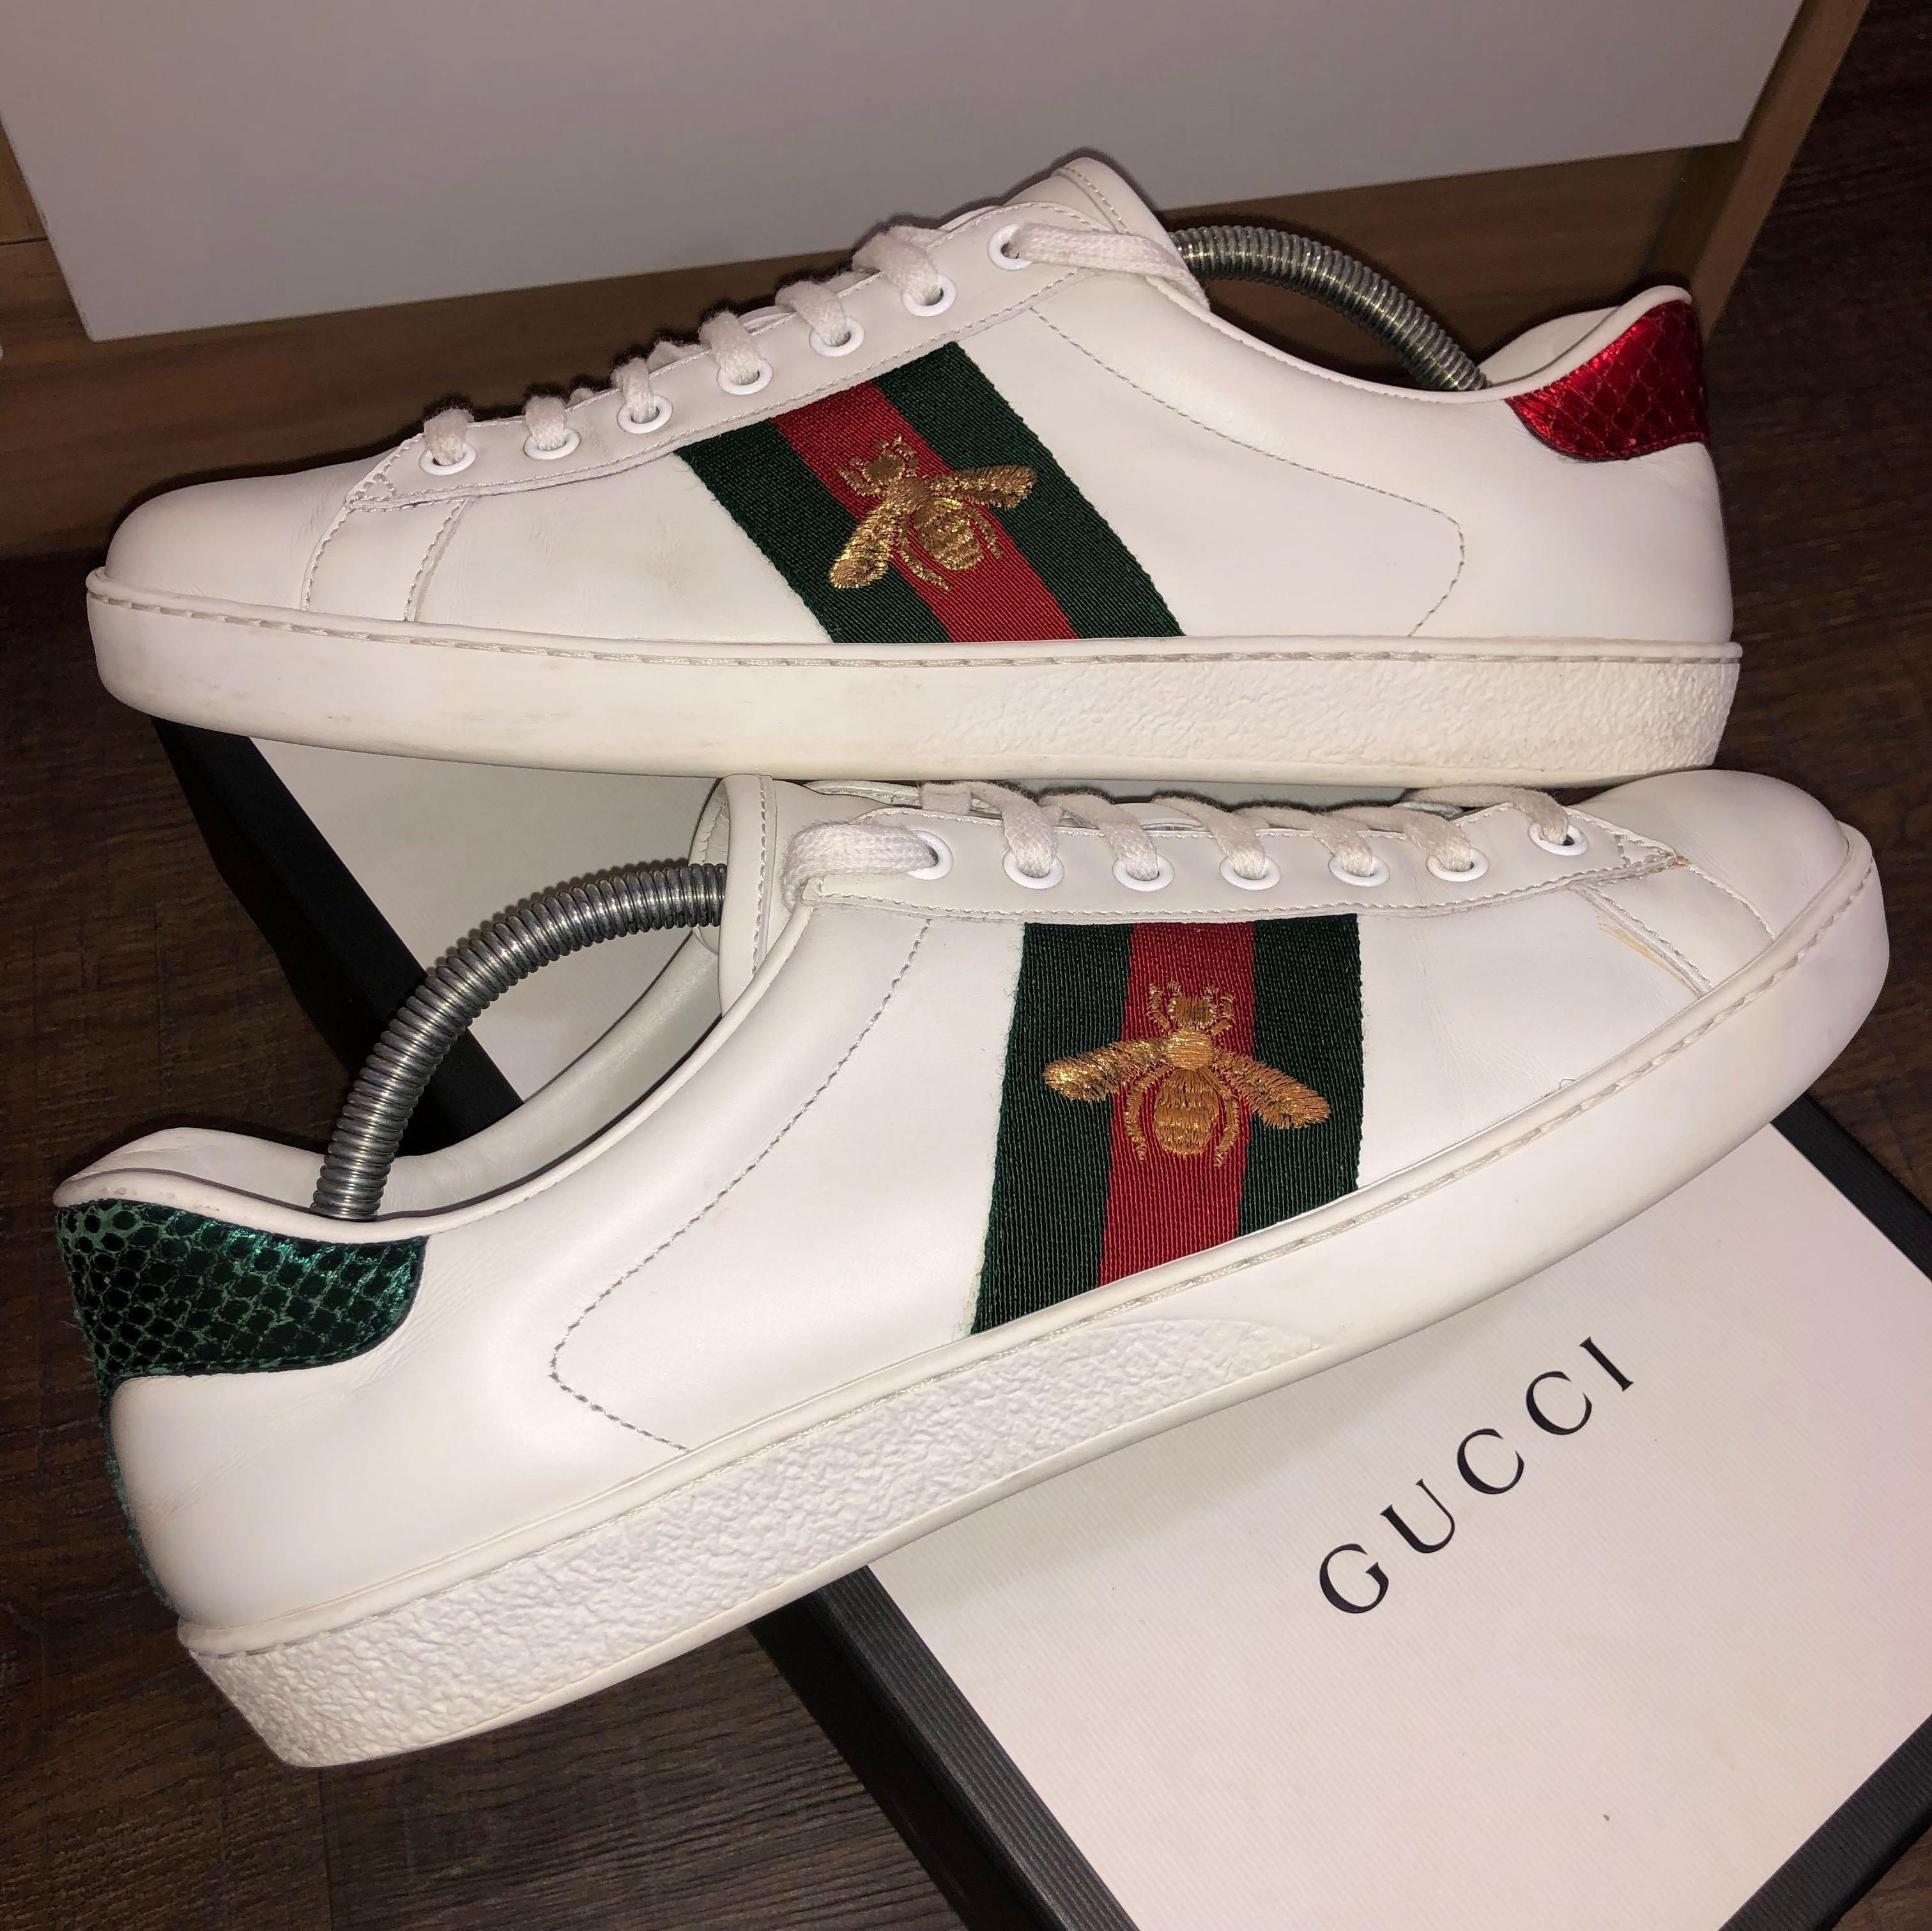 Gucci ace bee sneaker for sale, Men's